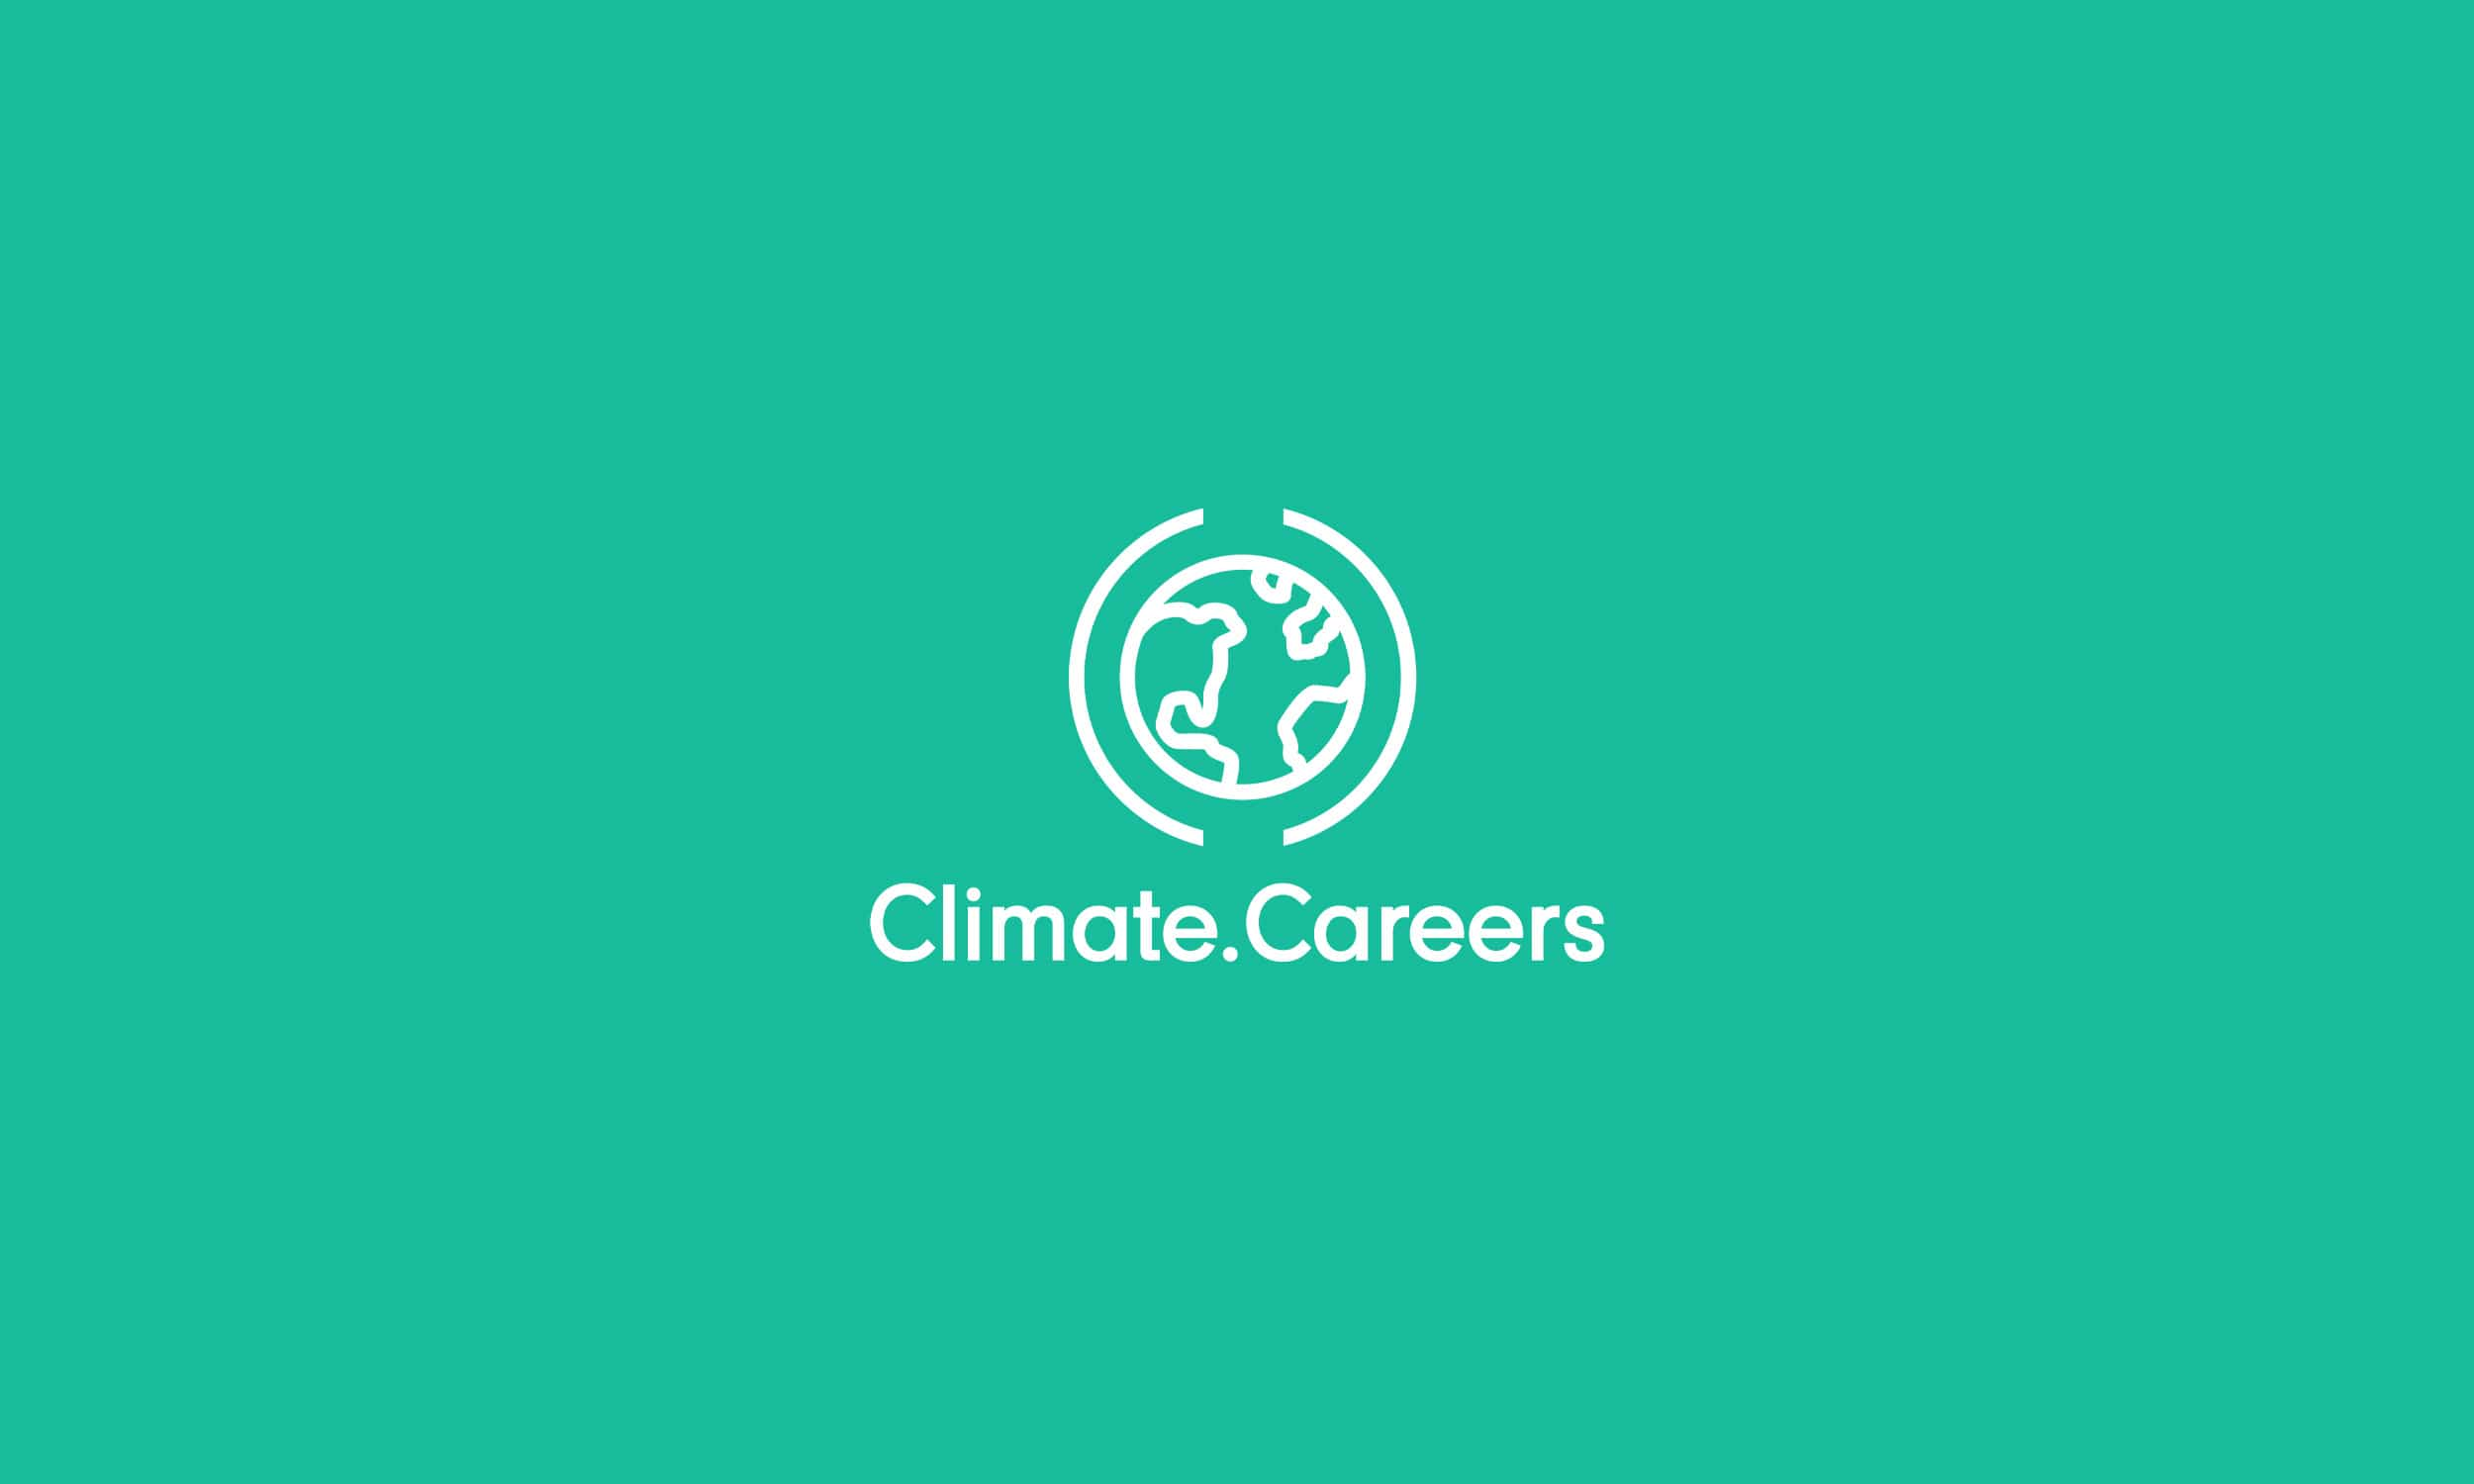 hdr-logo-template-climate.jpg